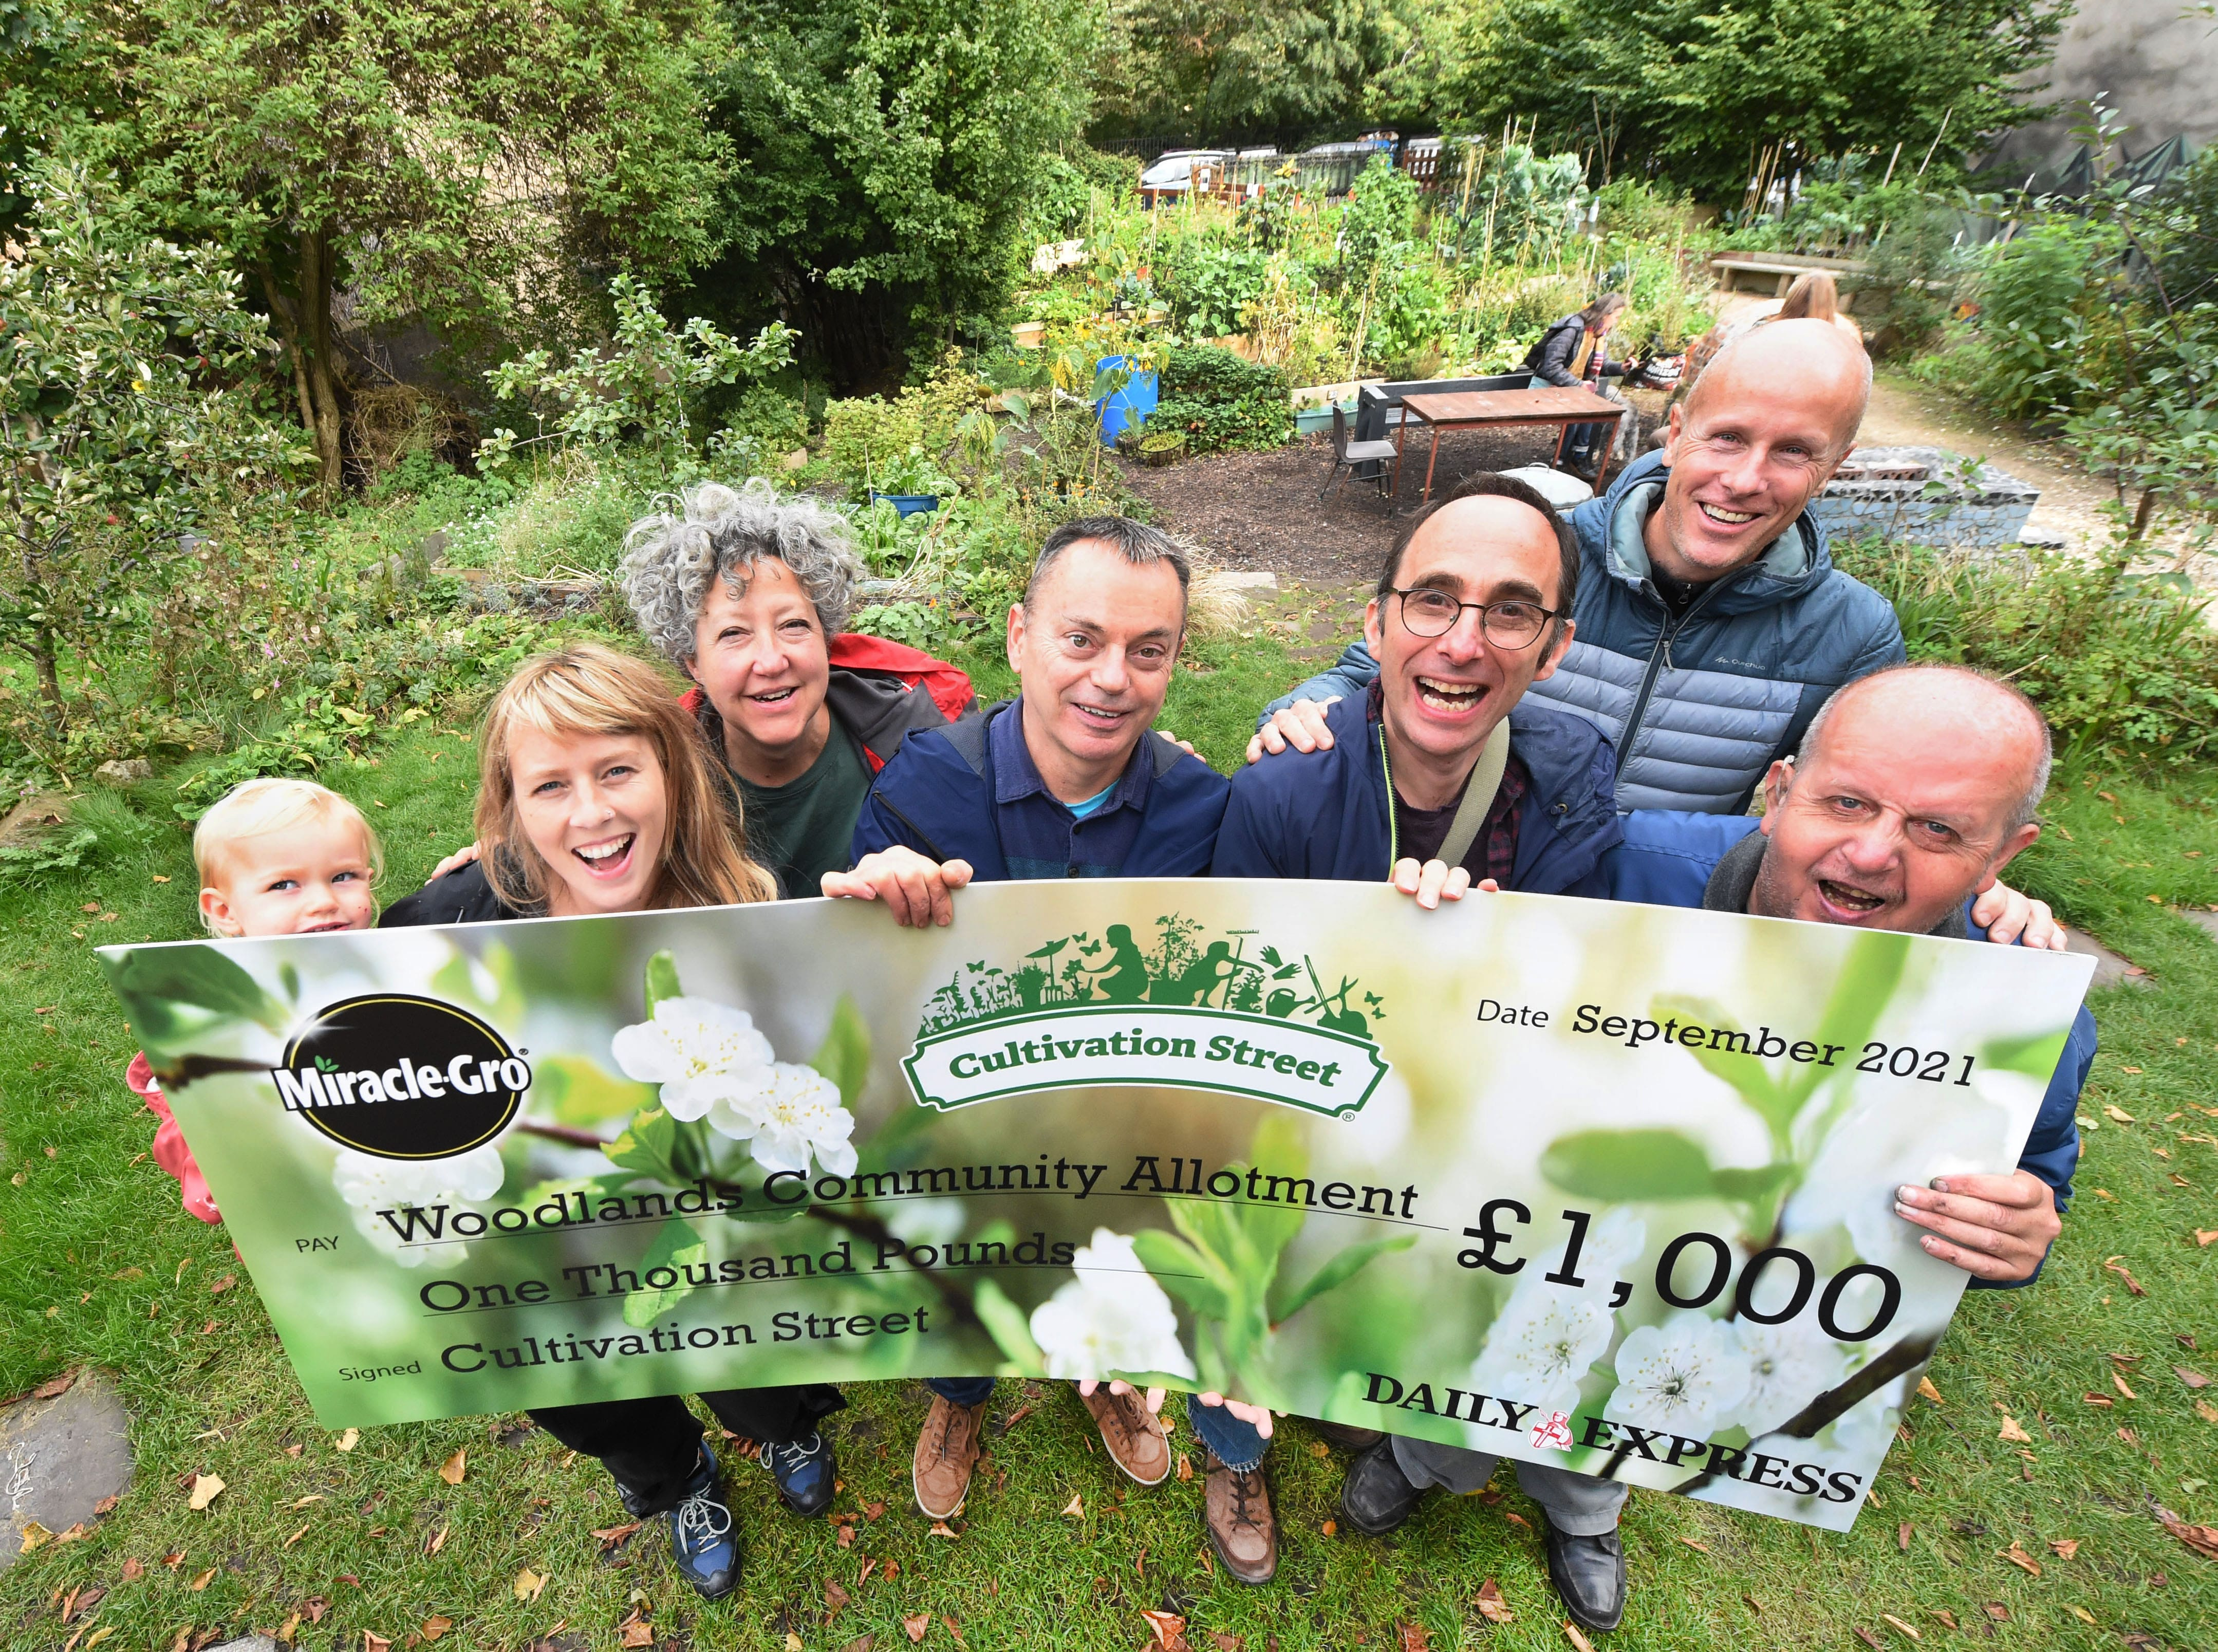 D.EXPRESS: Tim Cowen and locals at the Woodlands Community Garden, Ashley Street, Glasgow, who have won the £1,000 Community Garden category in the Cultivation Street gardening competition with David Domoney and Miracle-Grow.